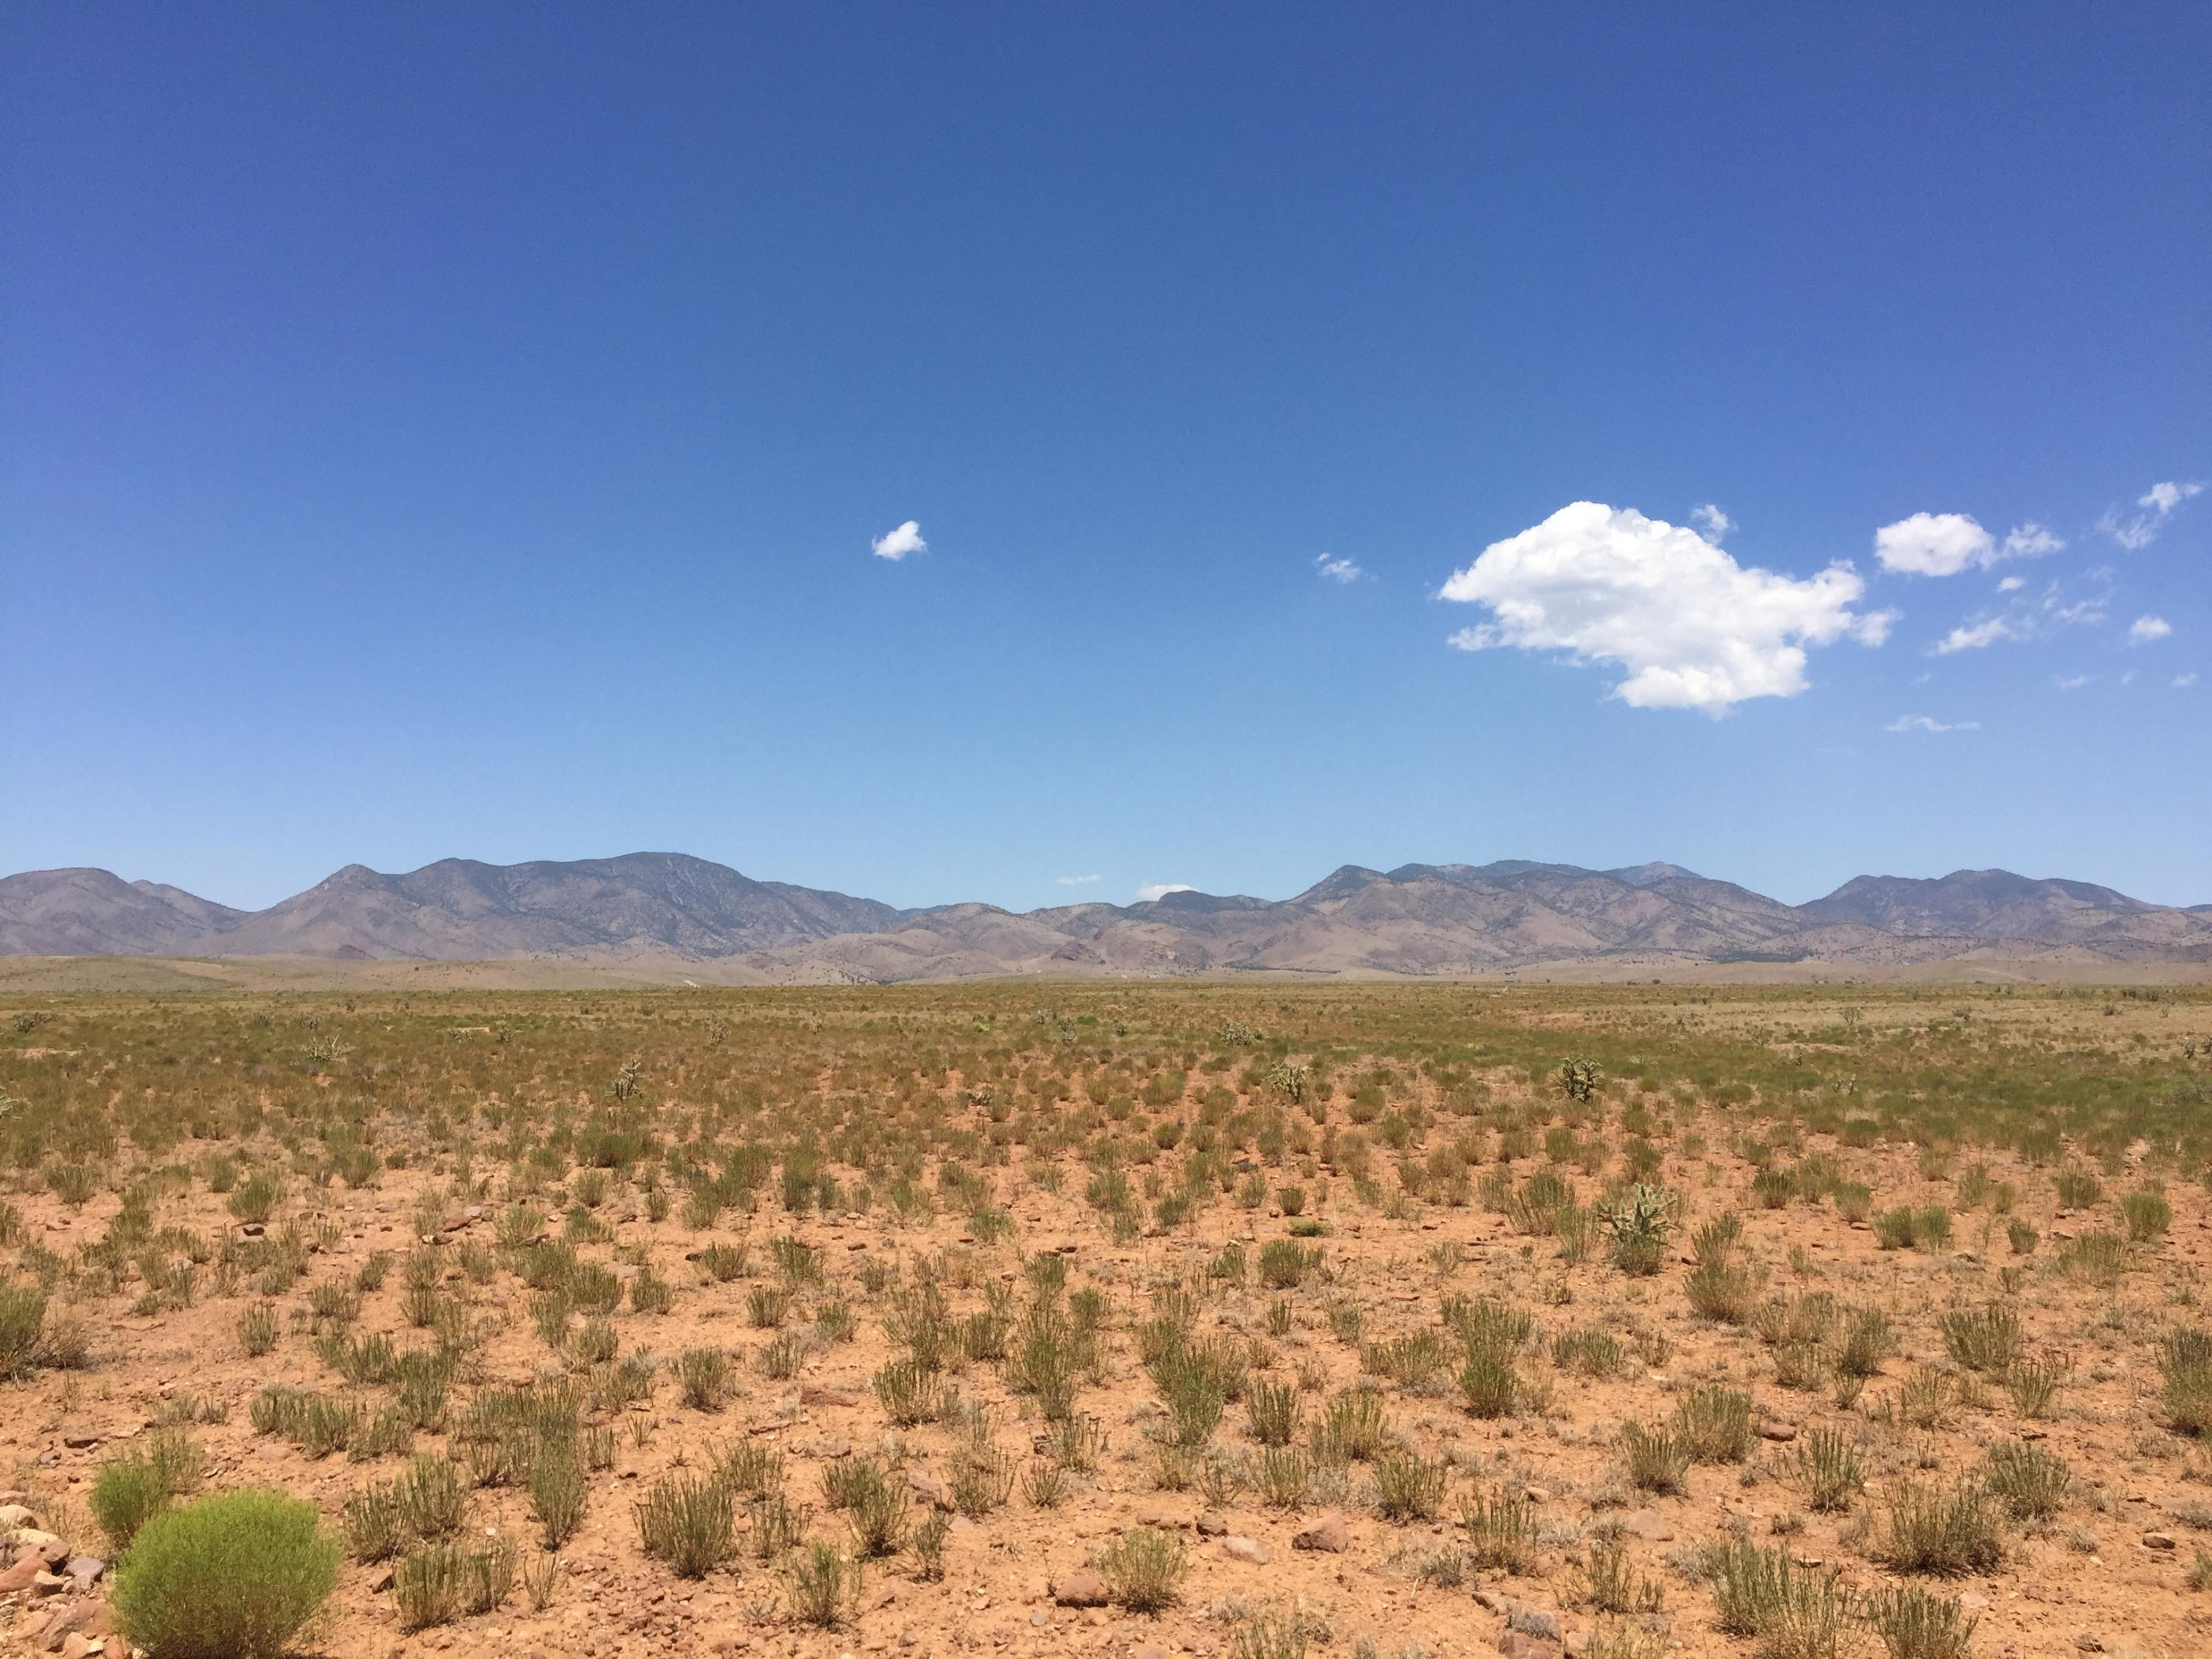 172 Mesa Overlook Drive, San Antonio, NM 87832 - San Antonio, NM real estate listing